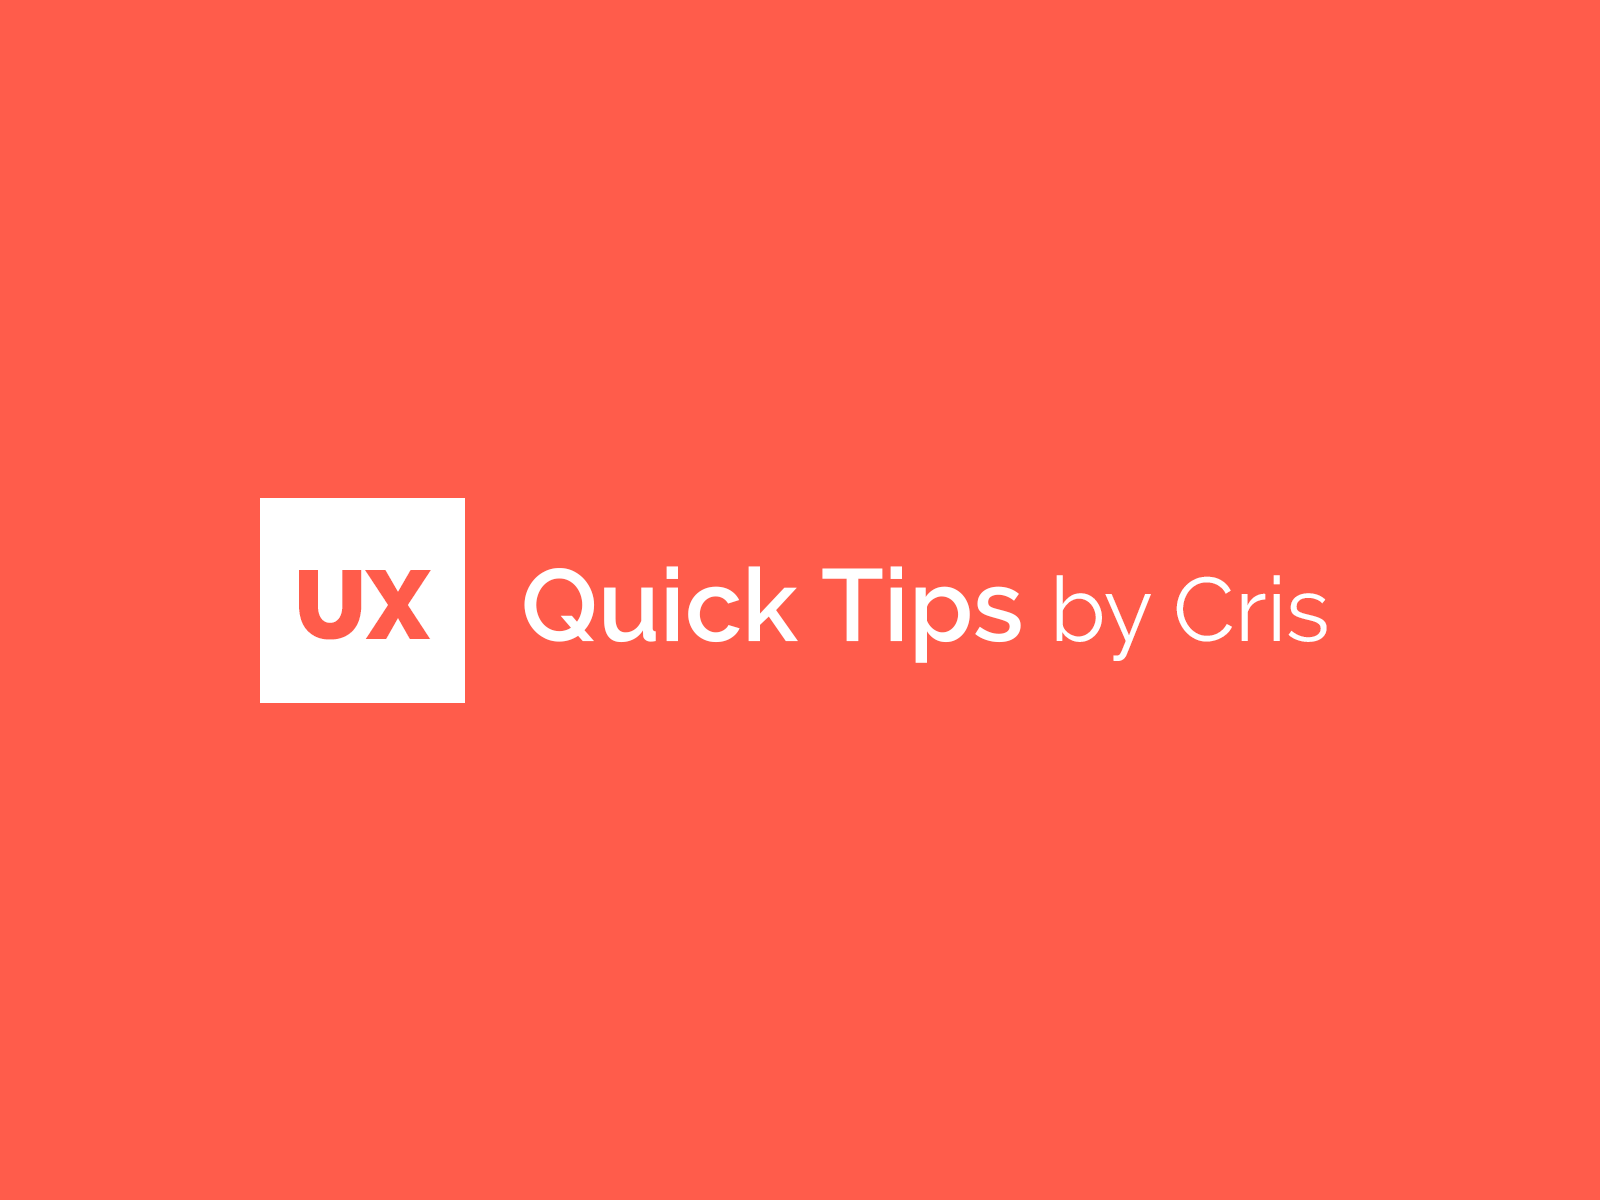 Ux Ui Quick Tips Vol 02 By Cristian Llanez On Dribbble